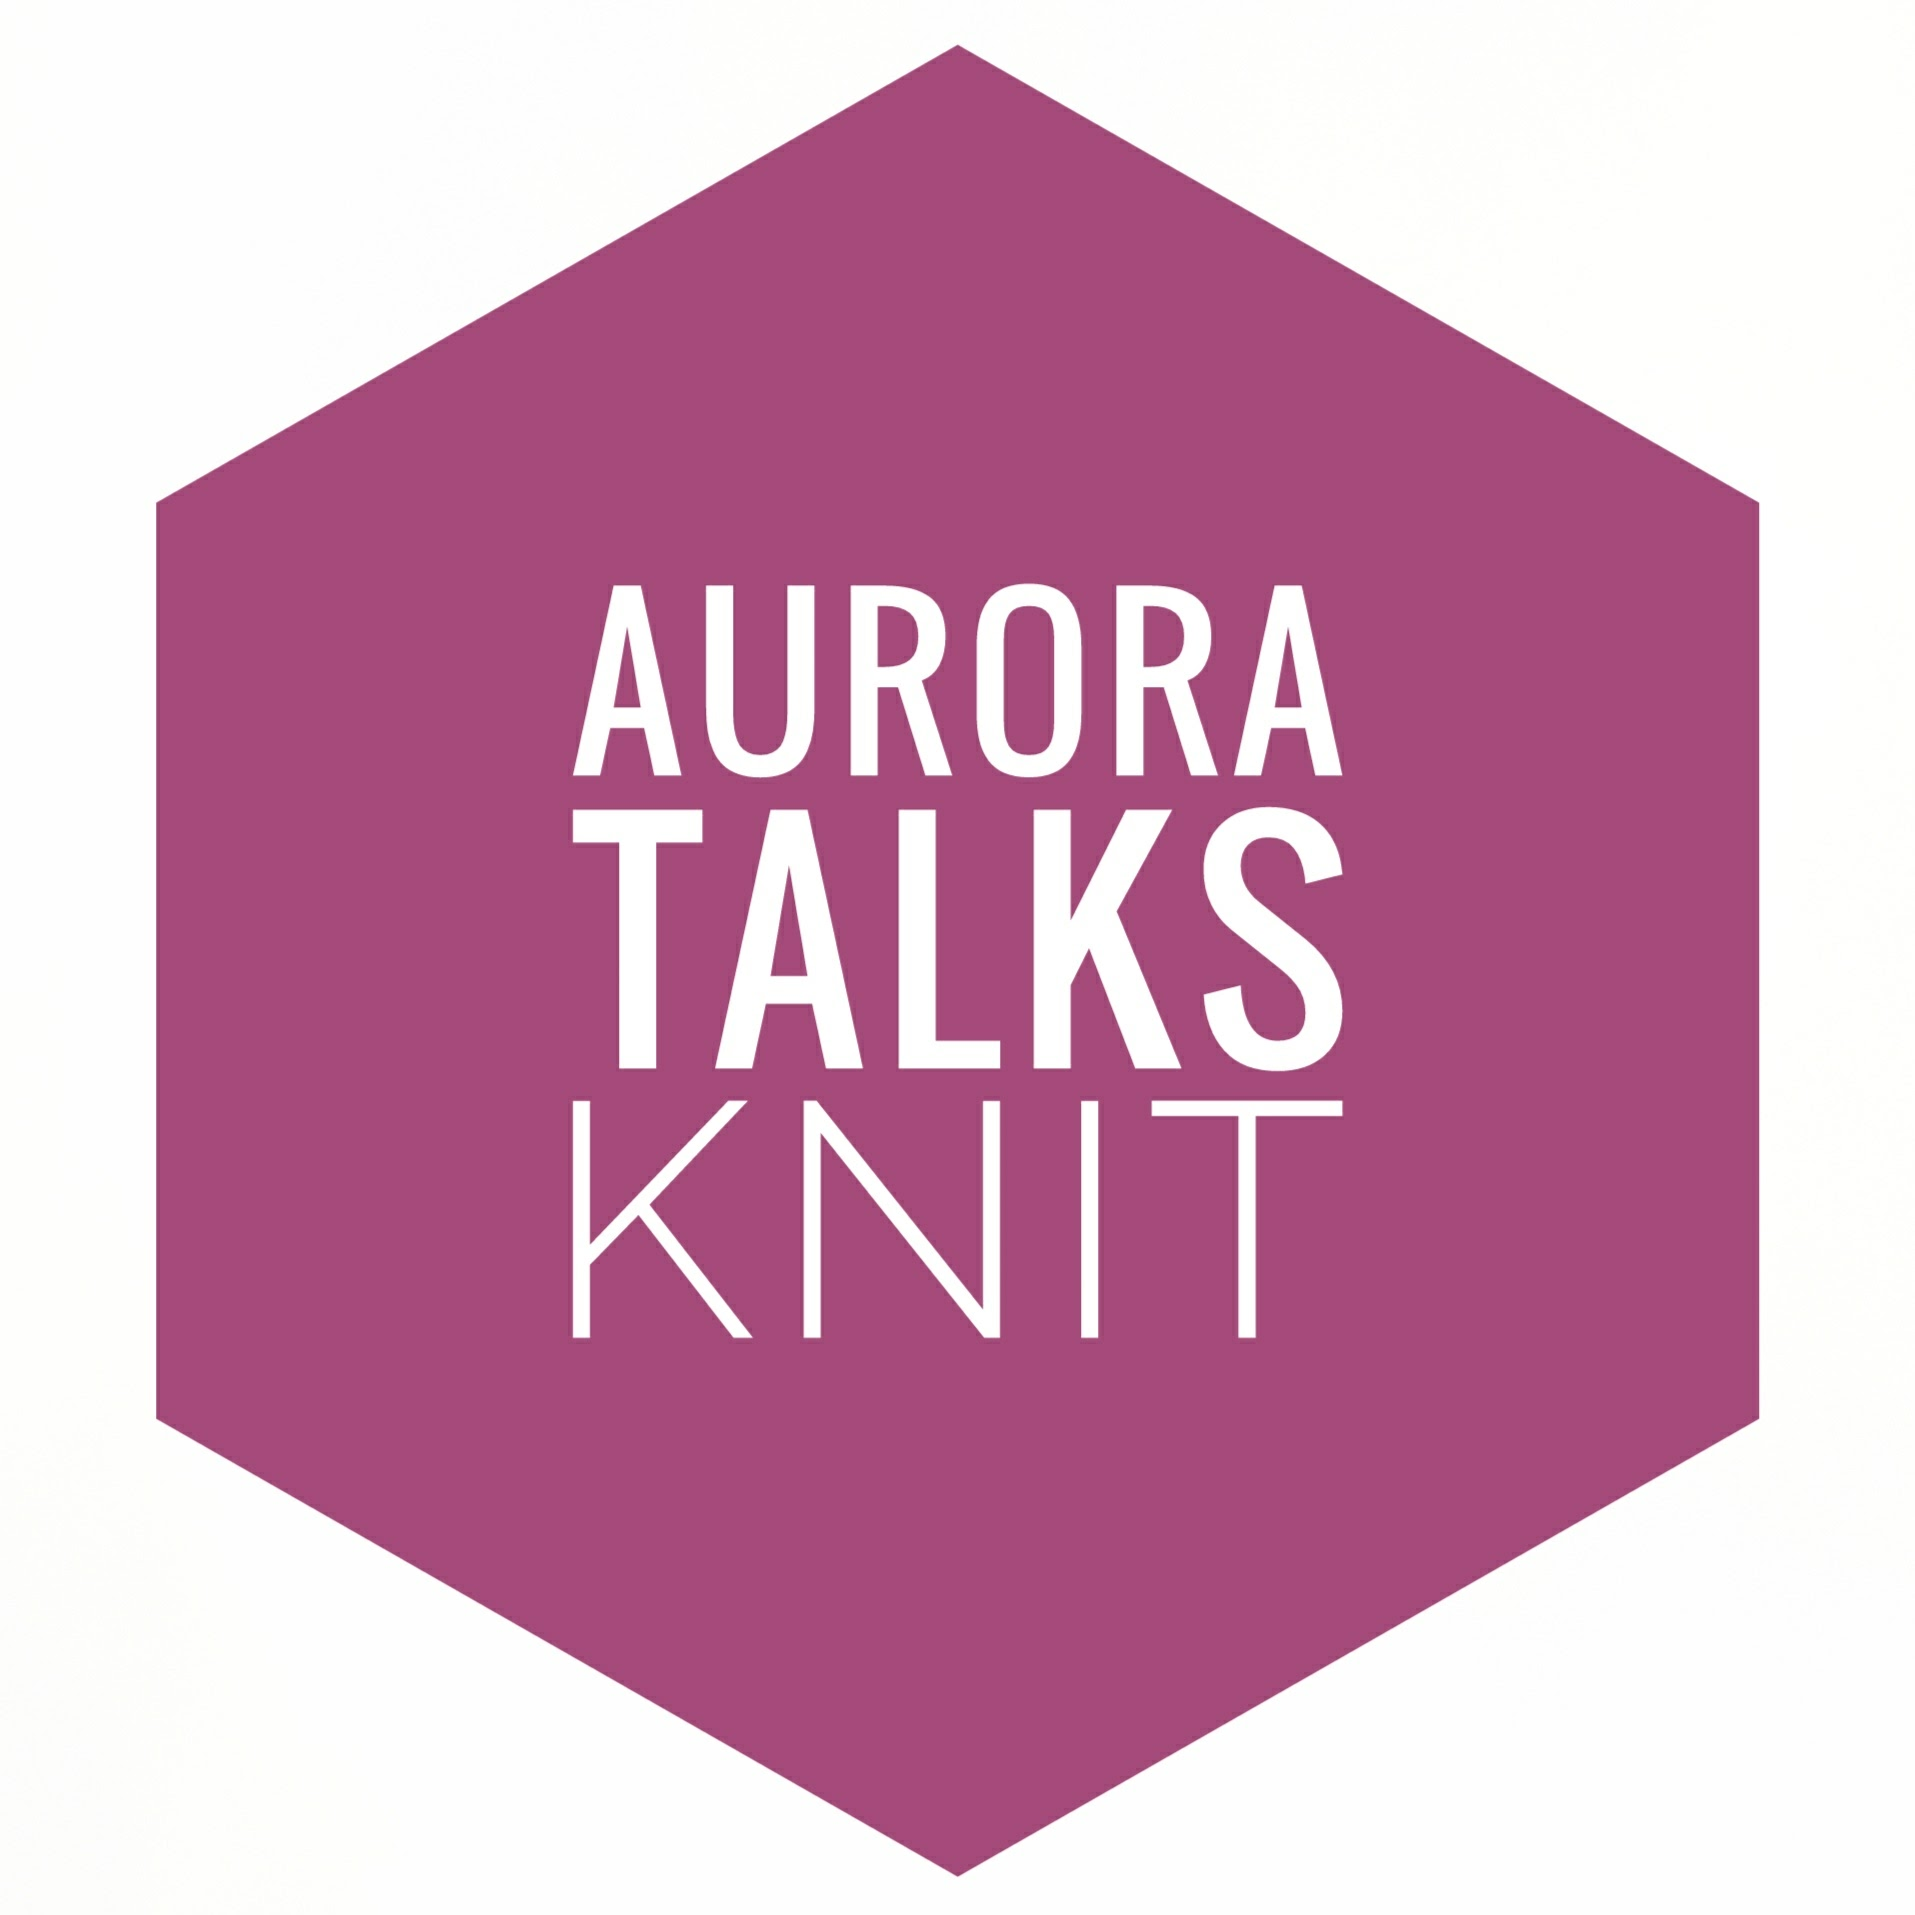 Aurora Talks Knit